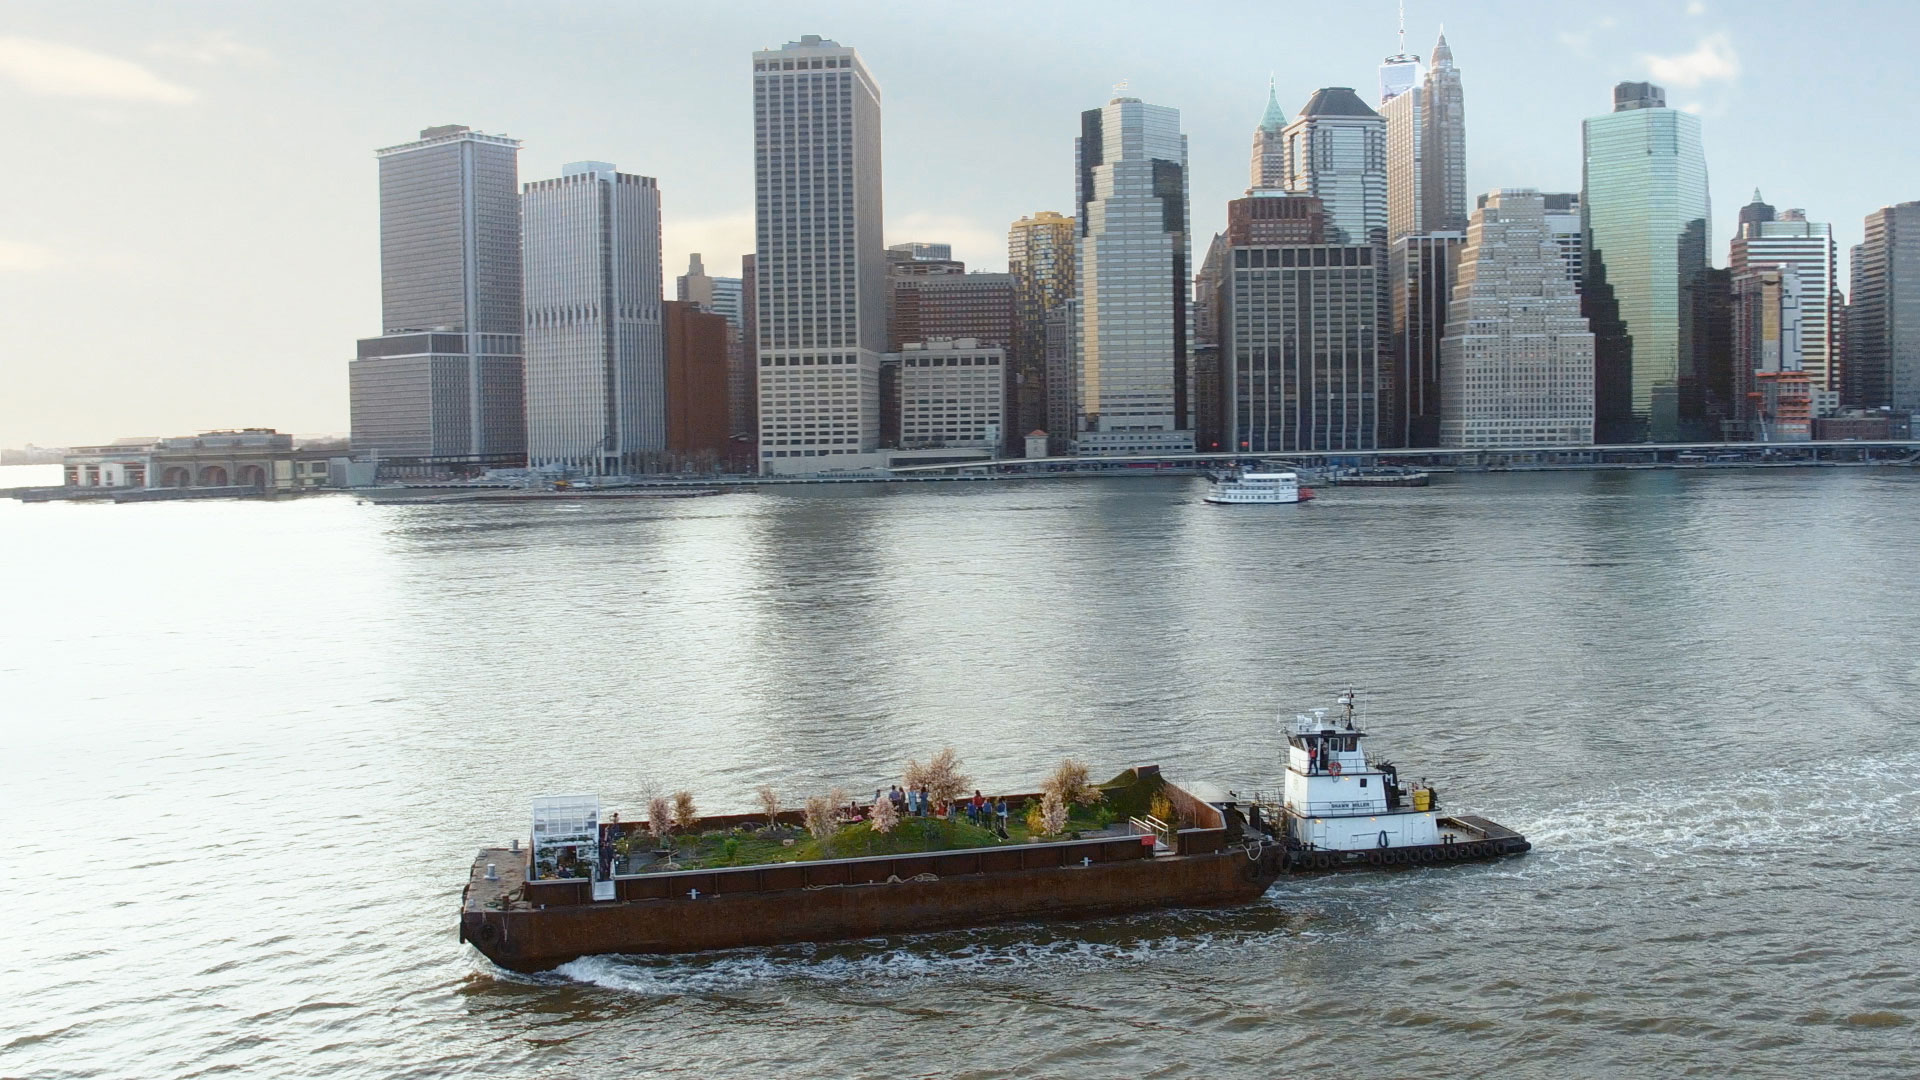 New Yorkers can forage for free food at the city's floating forest